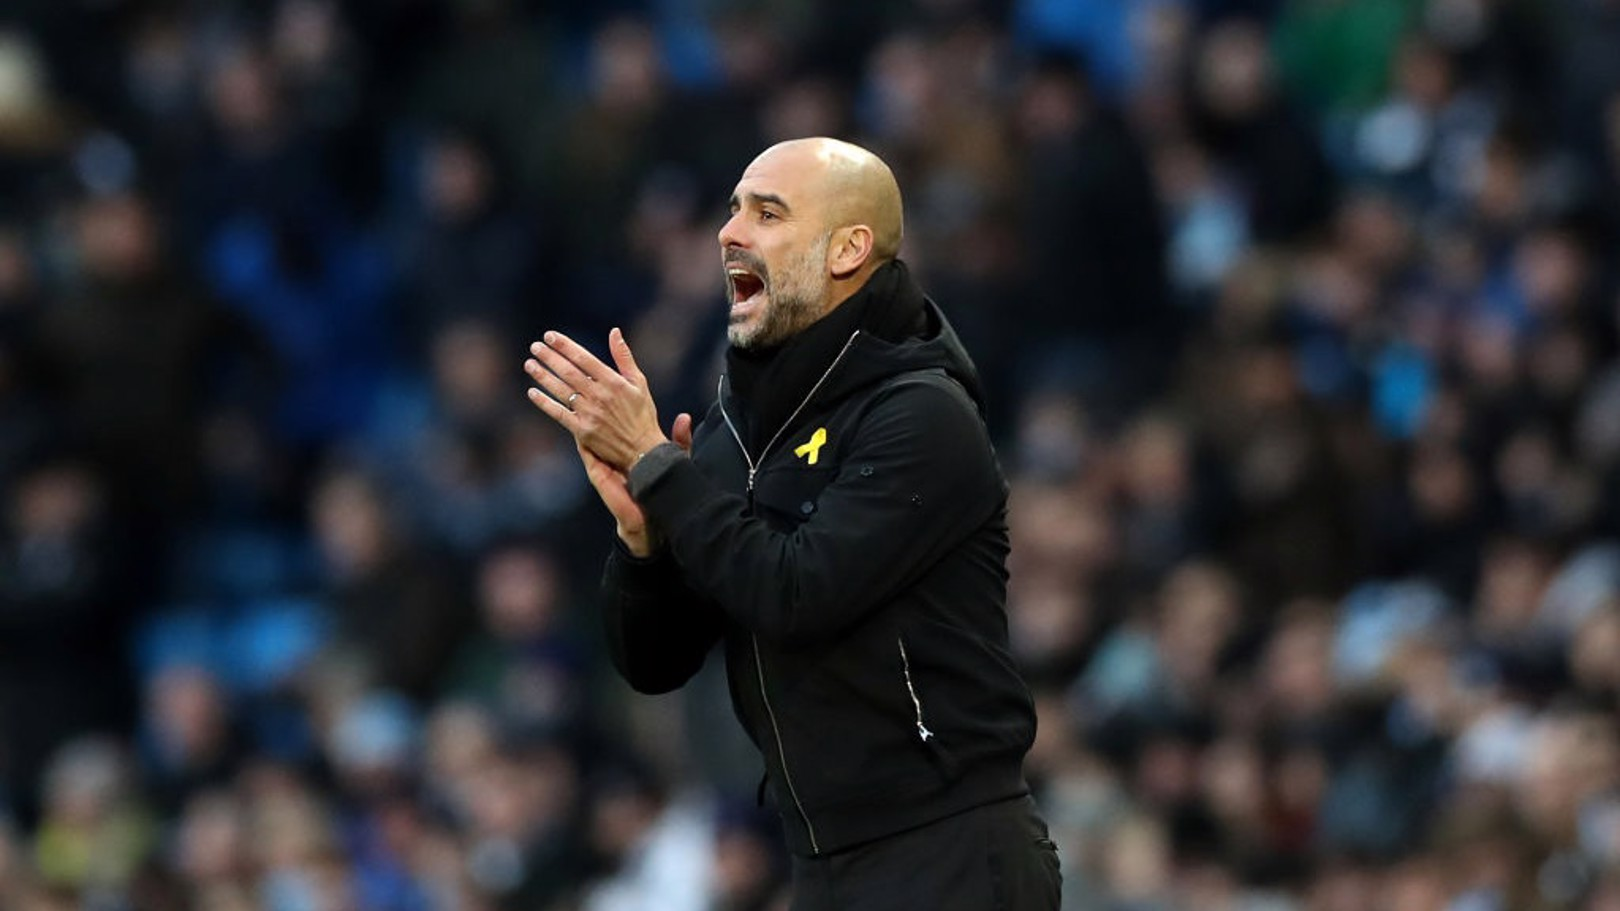 PEP WATCH: The manager encourages his side looking for a way through a resilient Burnley defence.